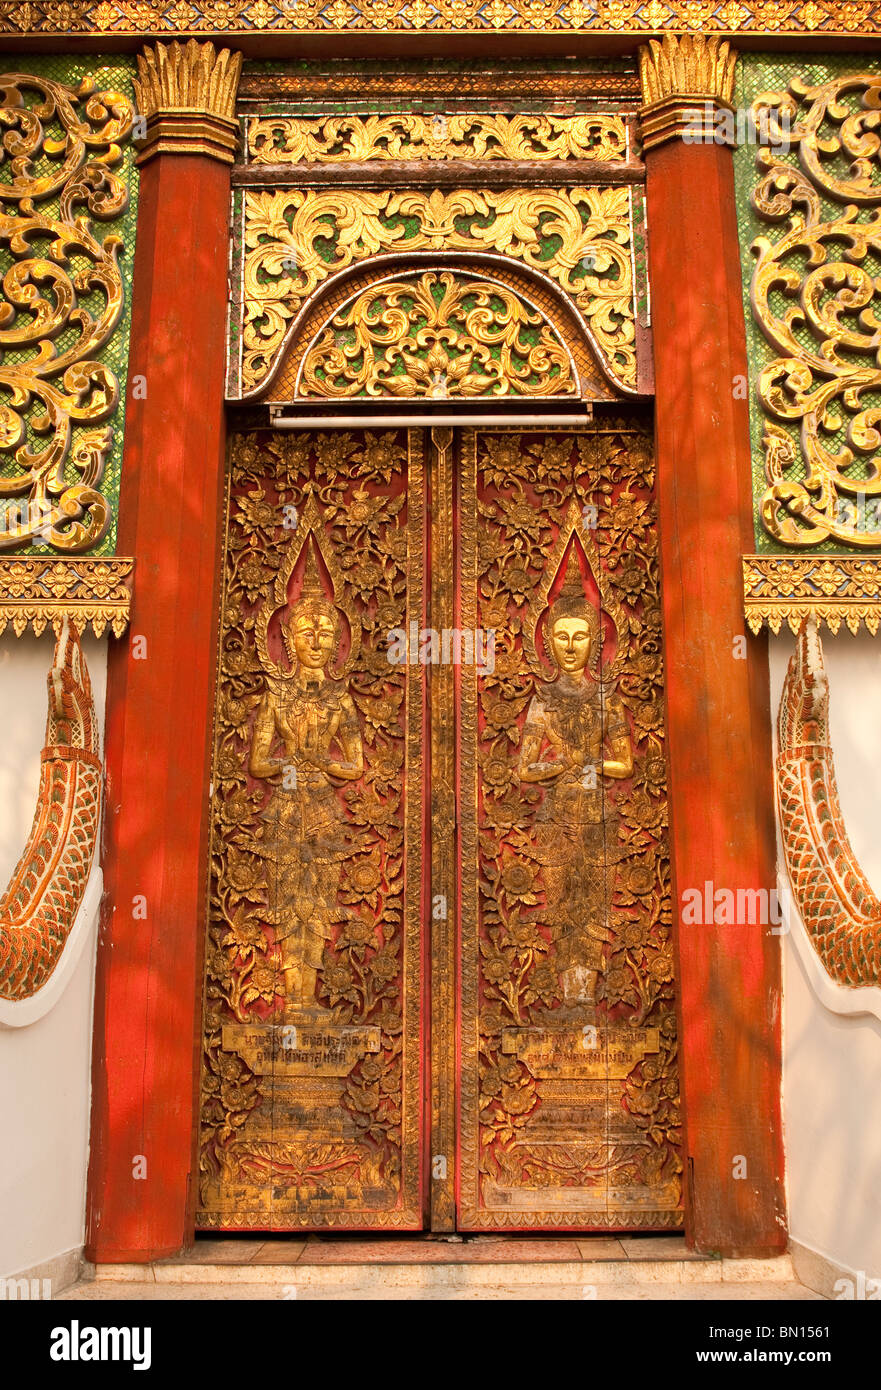 Door at Wat Fon Soi Buddhist temple in Chiang Mai Thailand. & Door at Wat Fon Soi Buddhist temple in Chiang Mai Thailand Stock ... Pezcame.Com